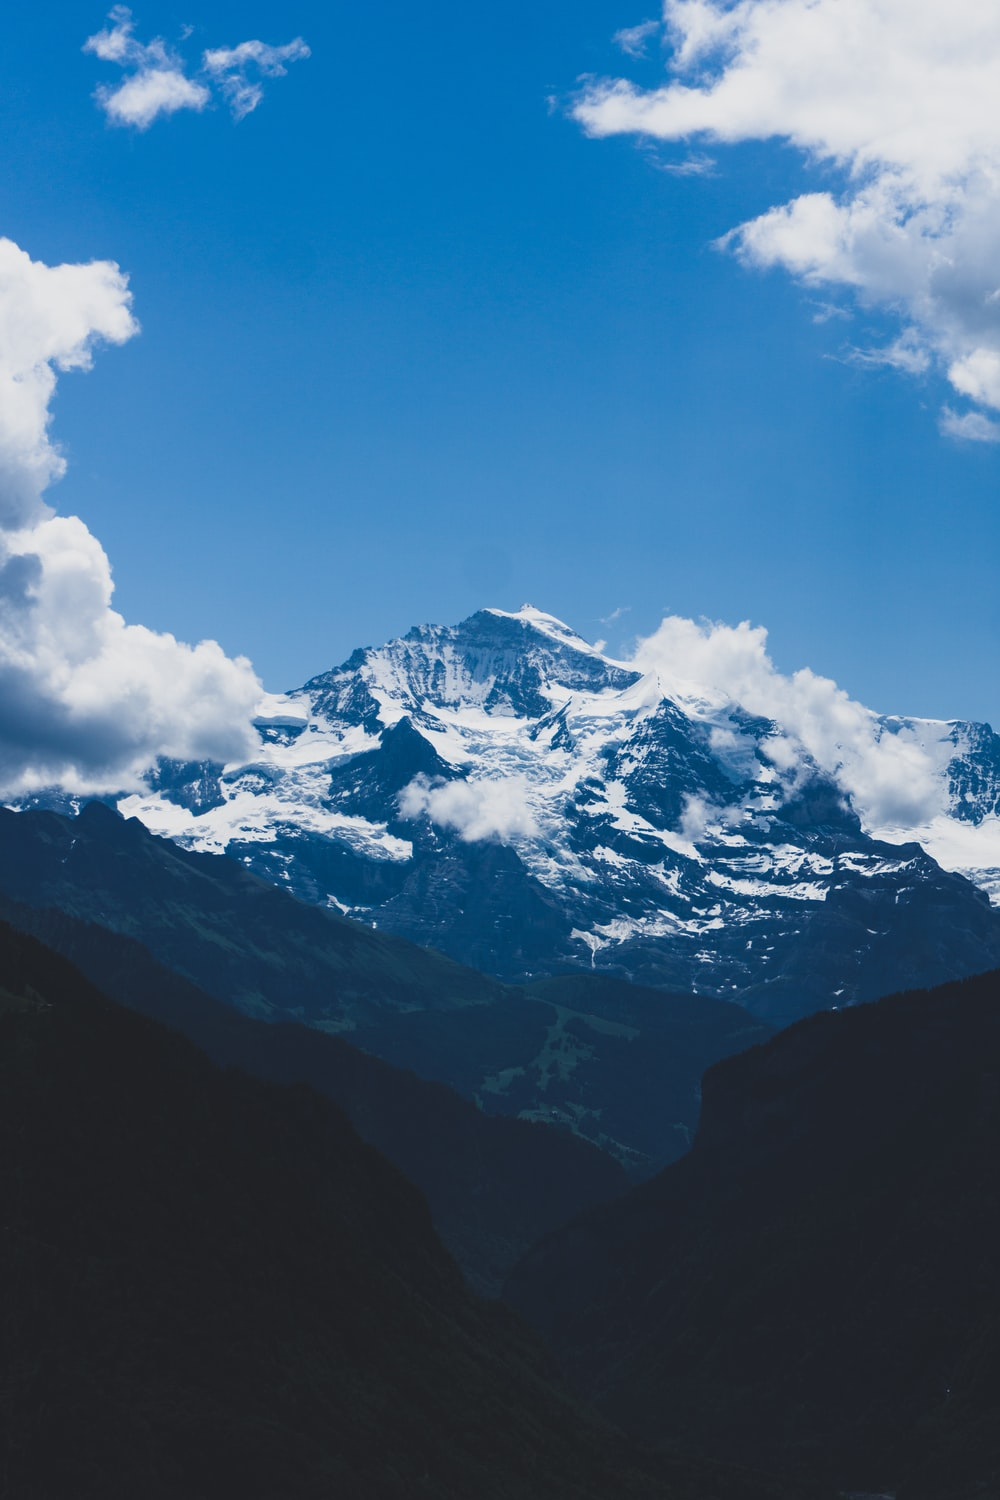 snow-covered mountain under white clouds during daytime